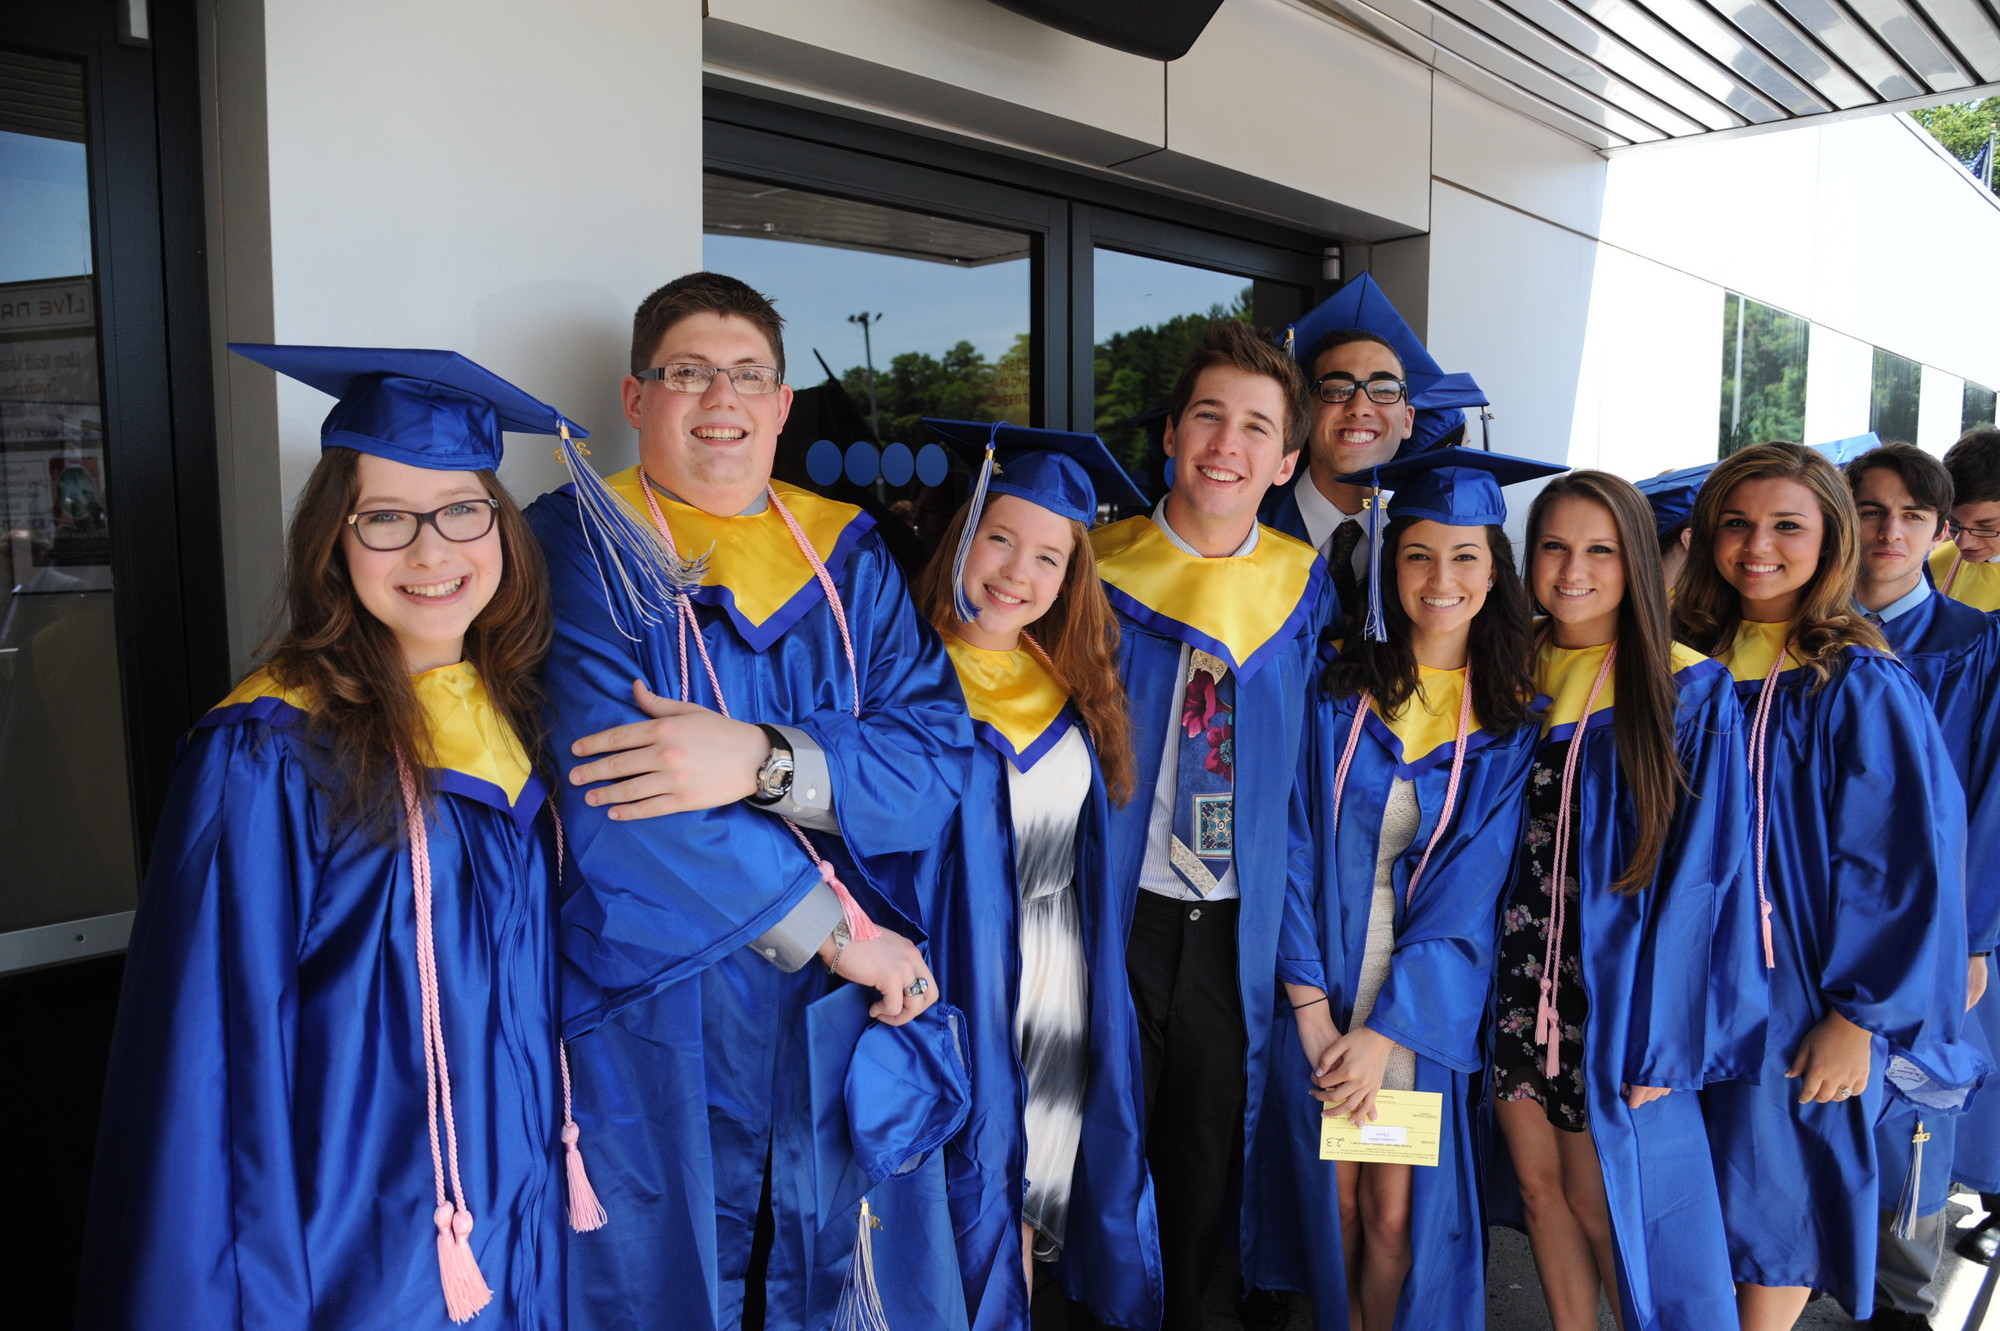 Calhoun�s class of 2013 was ready to graduate at the NYCB Theater in Westbury.